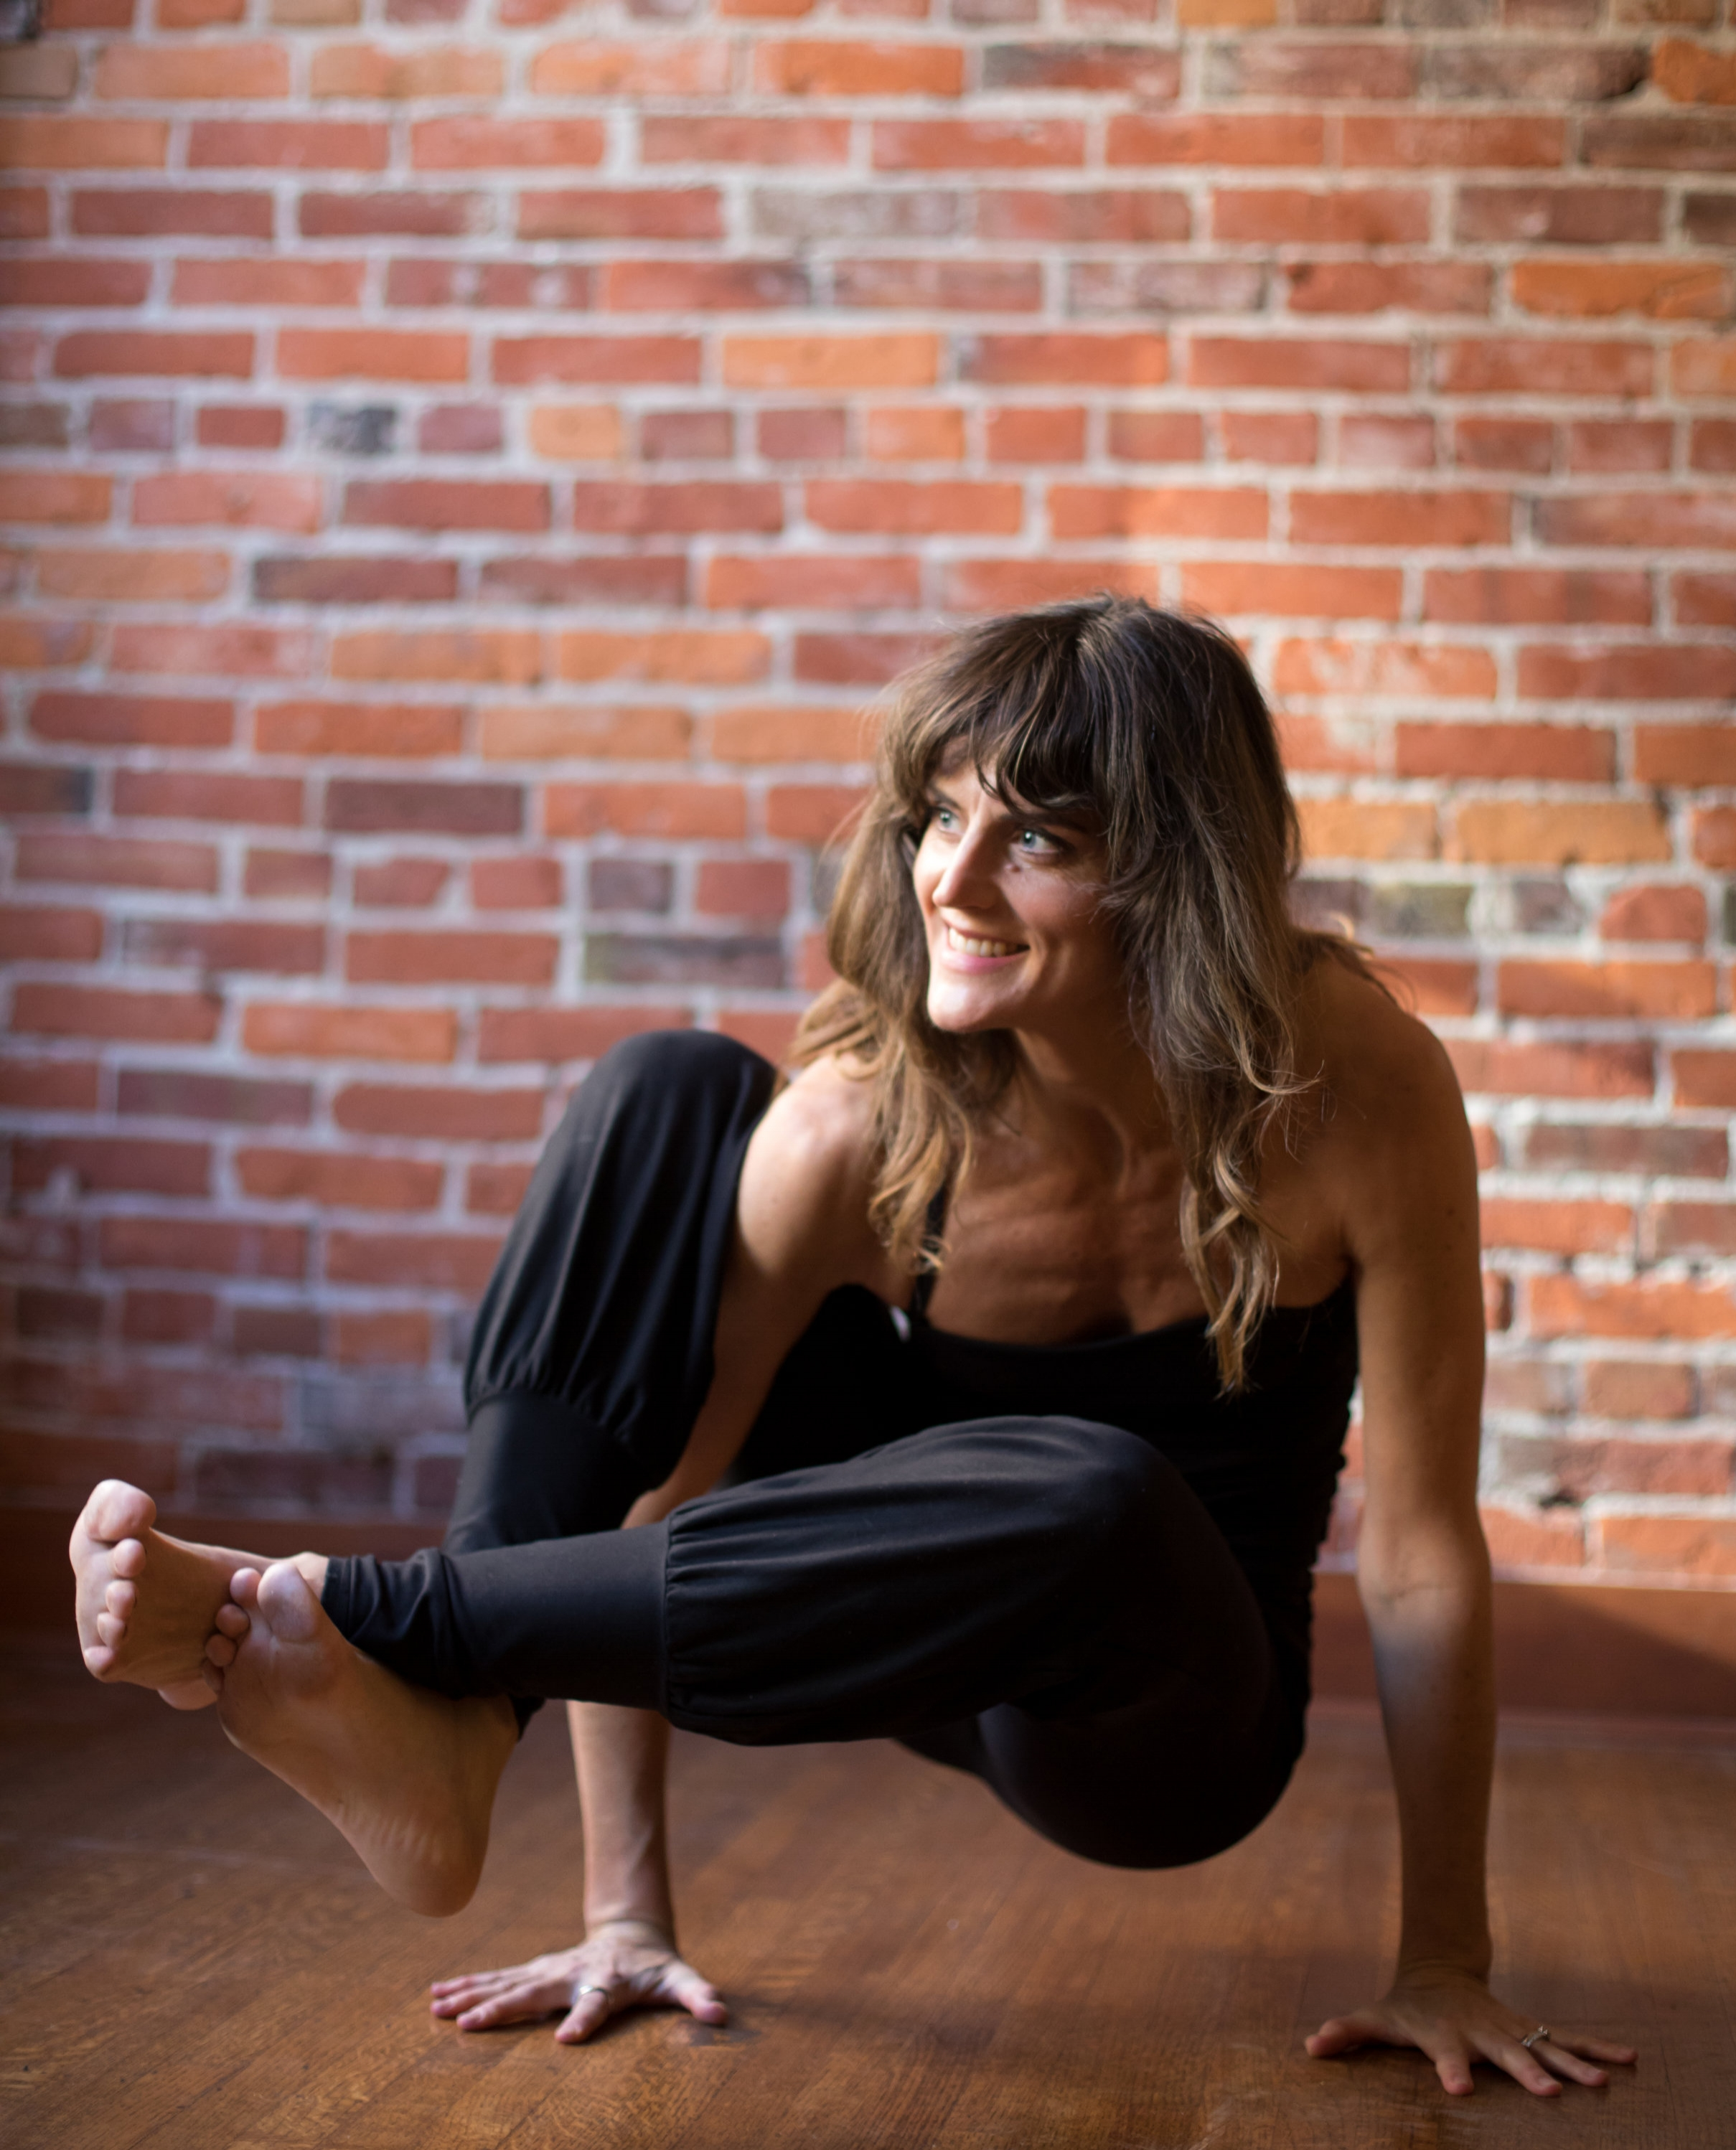 ABOUT… - I have been a student of yoga since the 1990s, teaching since 2004, and hold certifications in Vinyasa yoga and Anusara yoga. My classes are a blend of slow, warming flows, and poised, precise work. Valuing deep feeling and honest attention, combined with teachings from the ancient and the everyday, I work to hold a space where you are safe to feel, and supported to grow.SEE CHRISTINE'S FULL BIO…